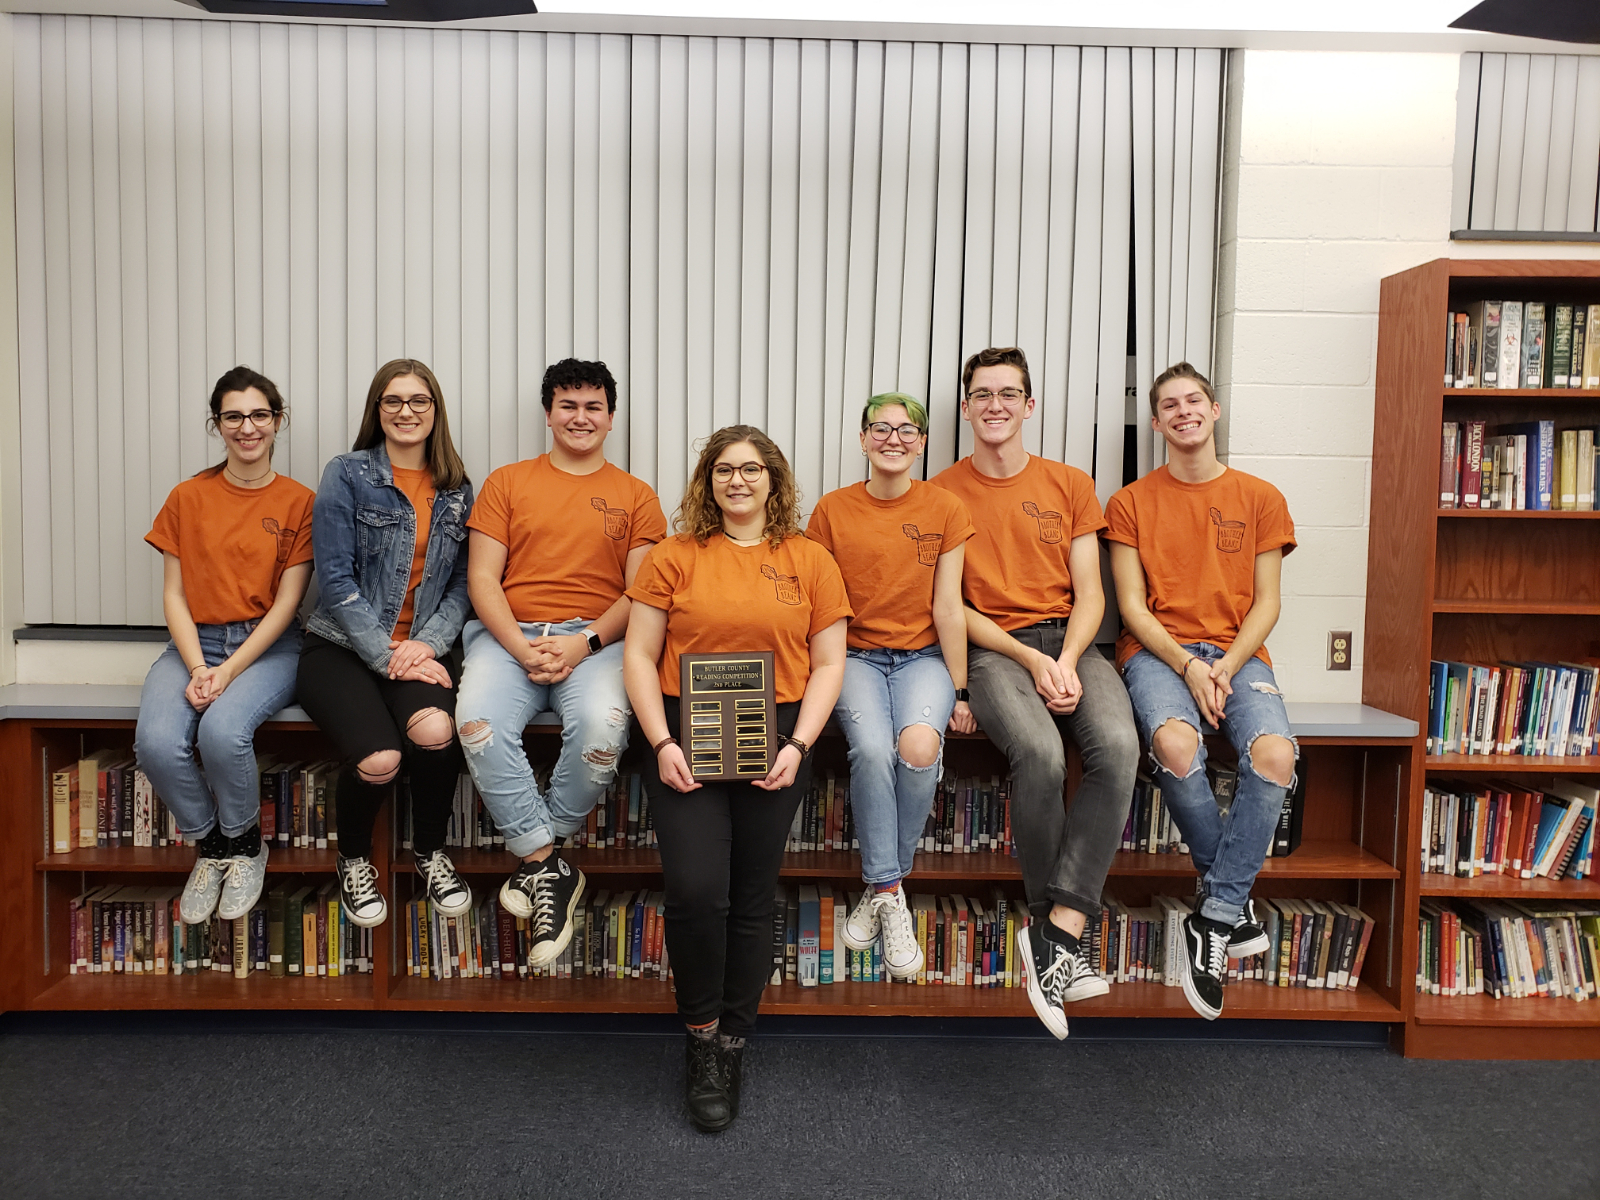 Congratulations to Brother Beans for placing 2nd at Butler County Reading competition!